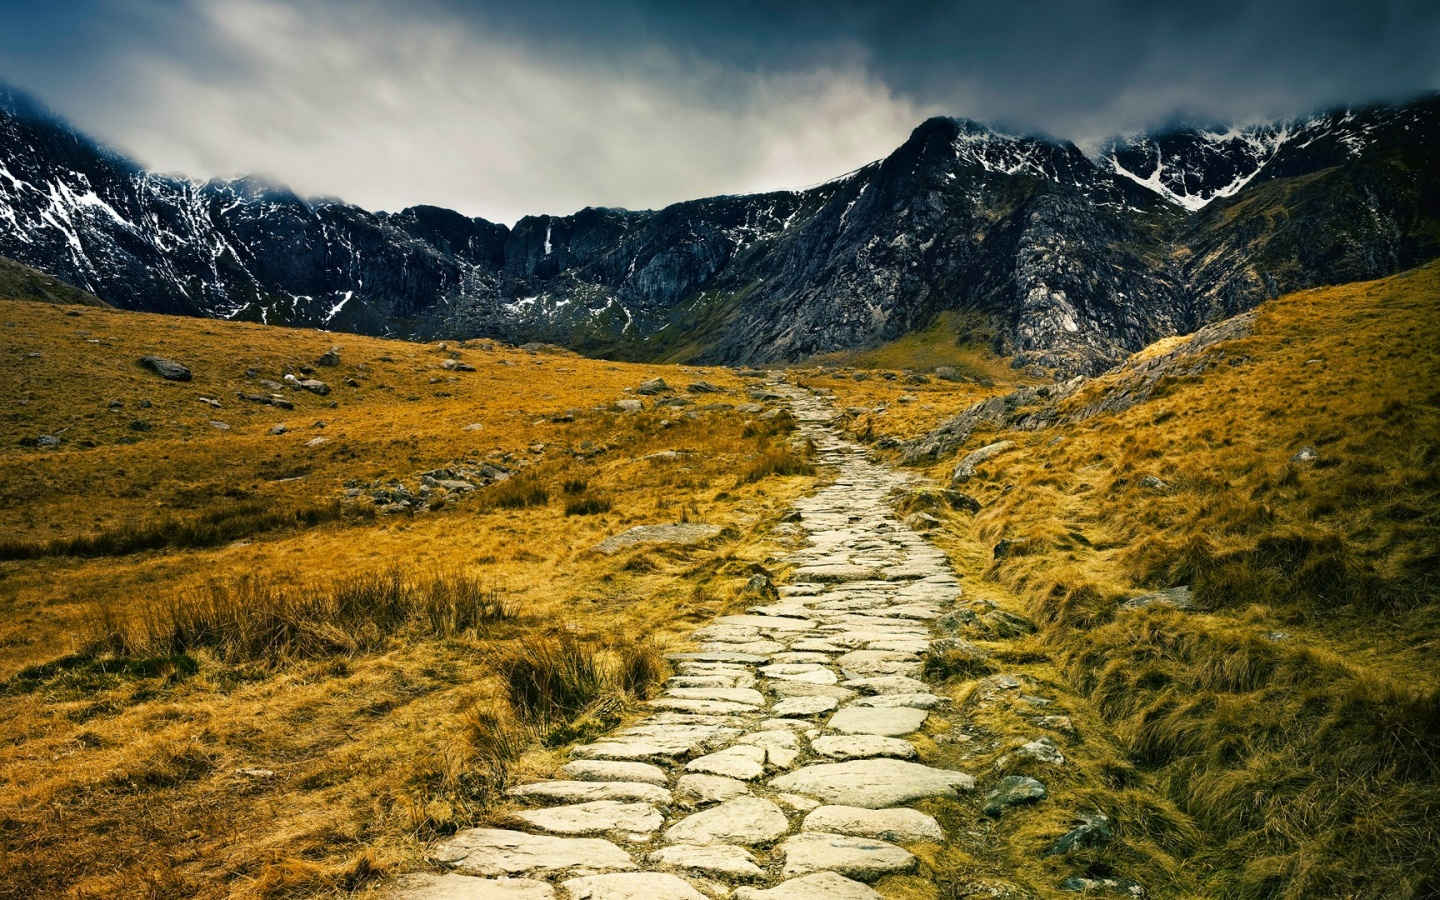 stone path wallpaper - photo #1